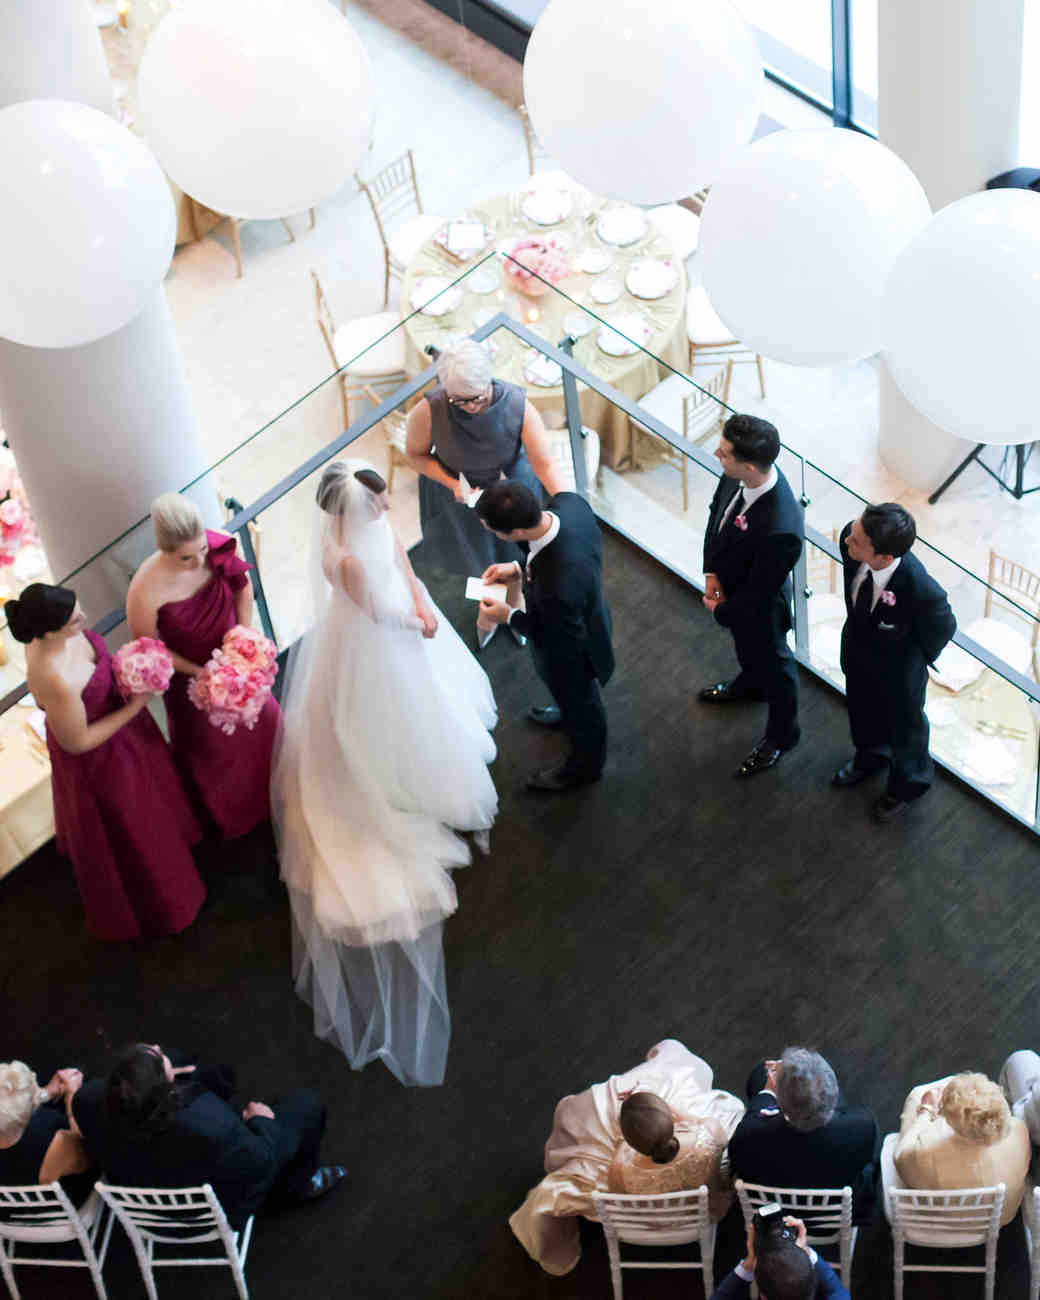 Simple Wedding Ceremony Outline Awesome A Basic Wedding Ceremony Outline for Planning the order Of